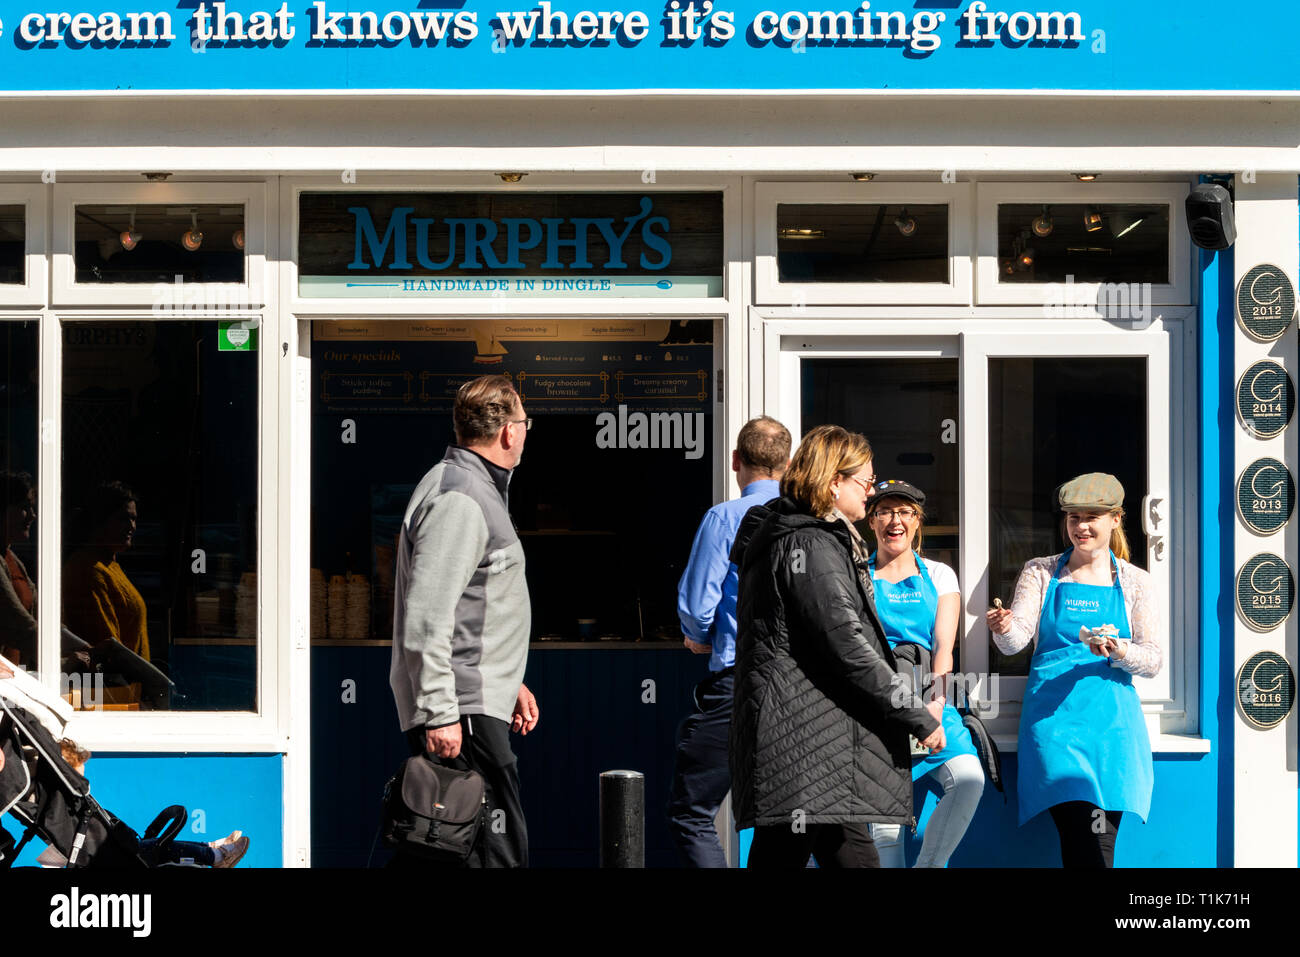 Killarney, County Kerry, Ireland, 27 March 2019. Irish weather. Ice cream shop employees offering free ice cream samples to passerbyers in the town centre. The temperatures in the South West Ireland have reached 16 degrees Celsius and people enjoying some outdoor activities. Credit: Ognyan Yosifov/Alamy Live News - Stock Image